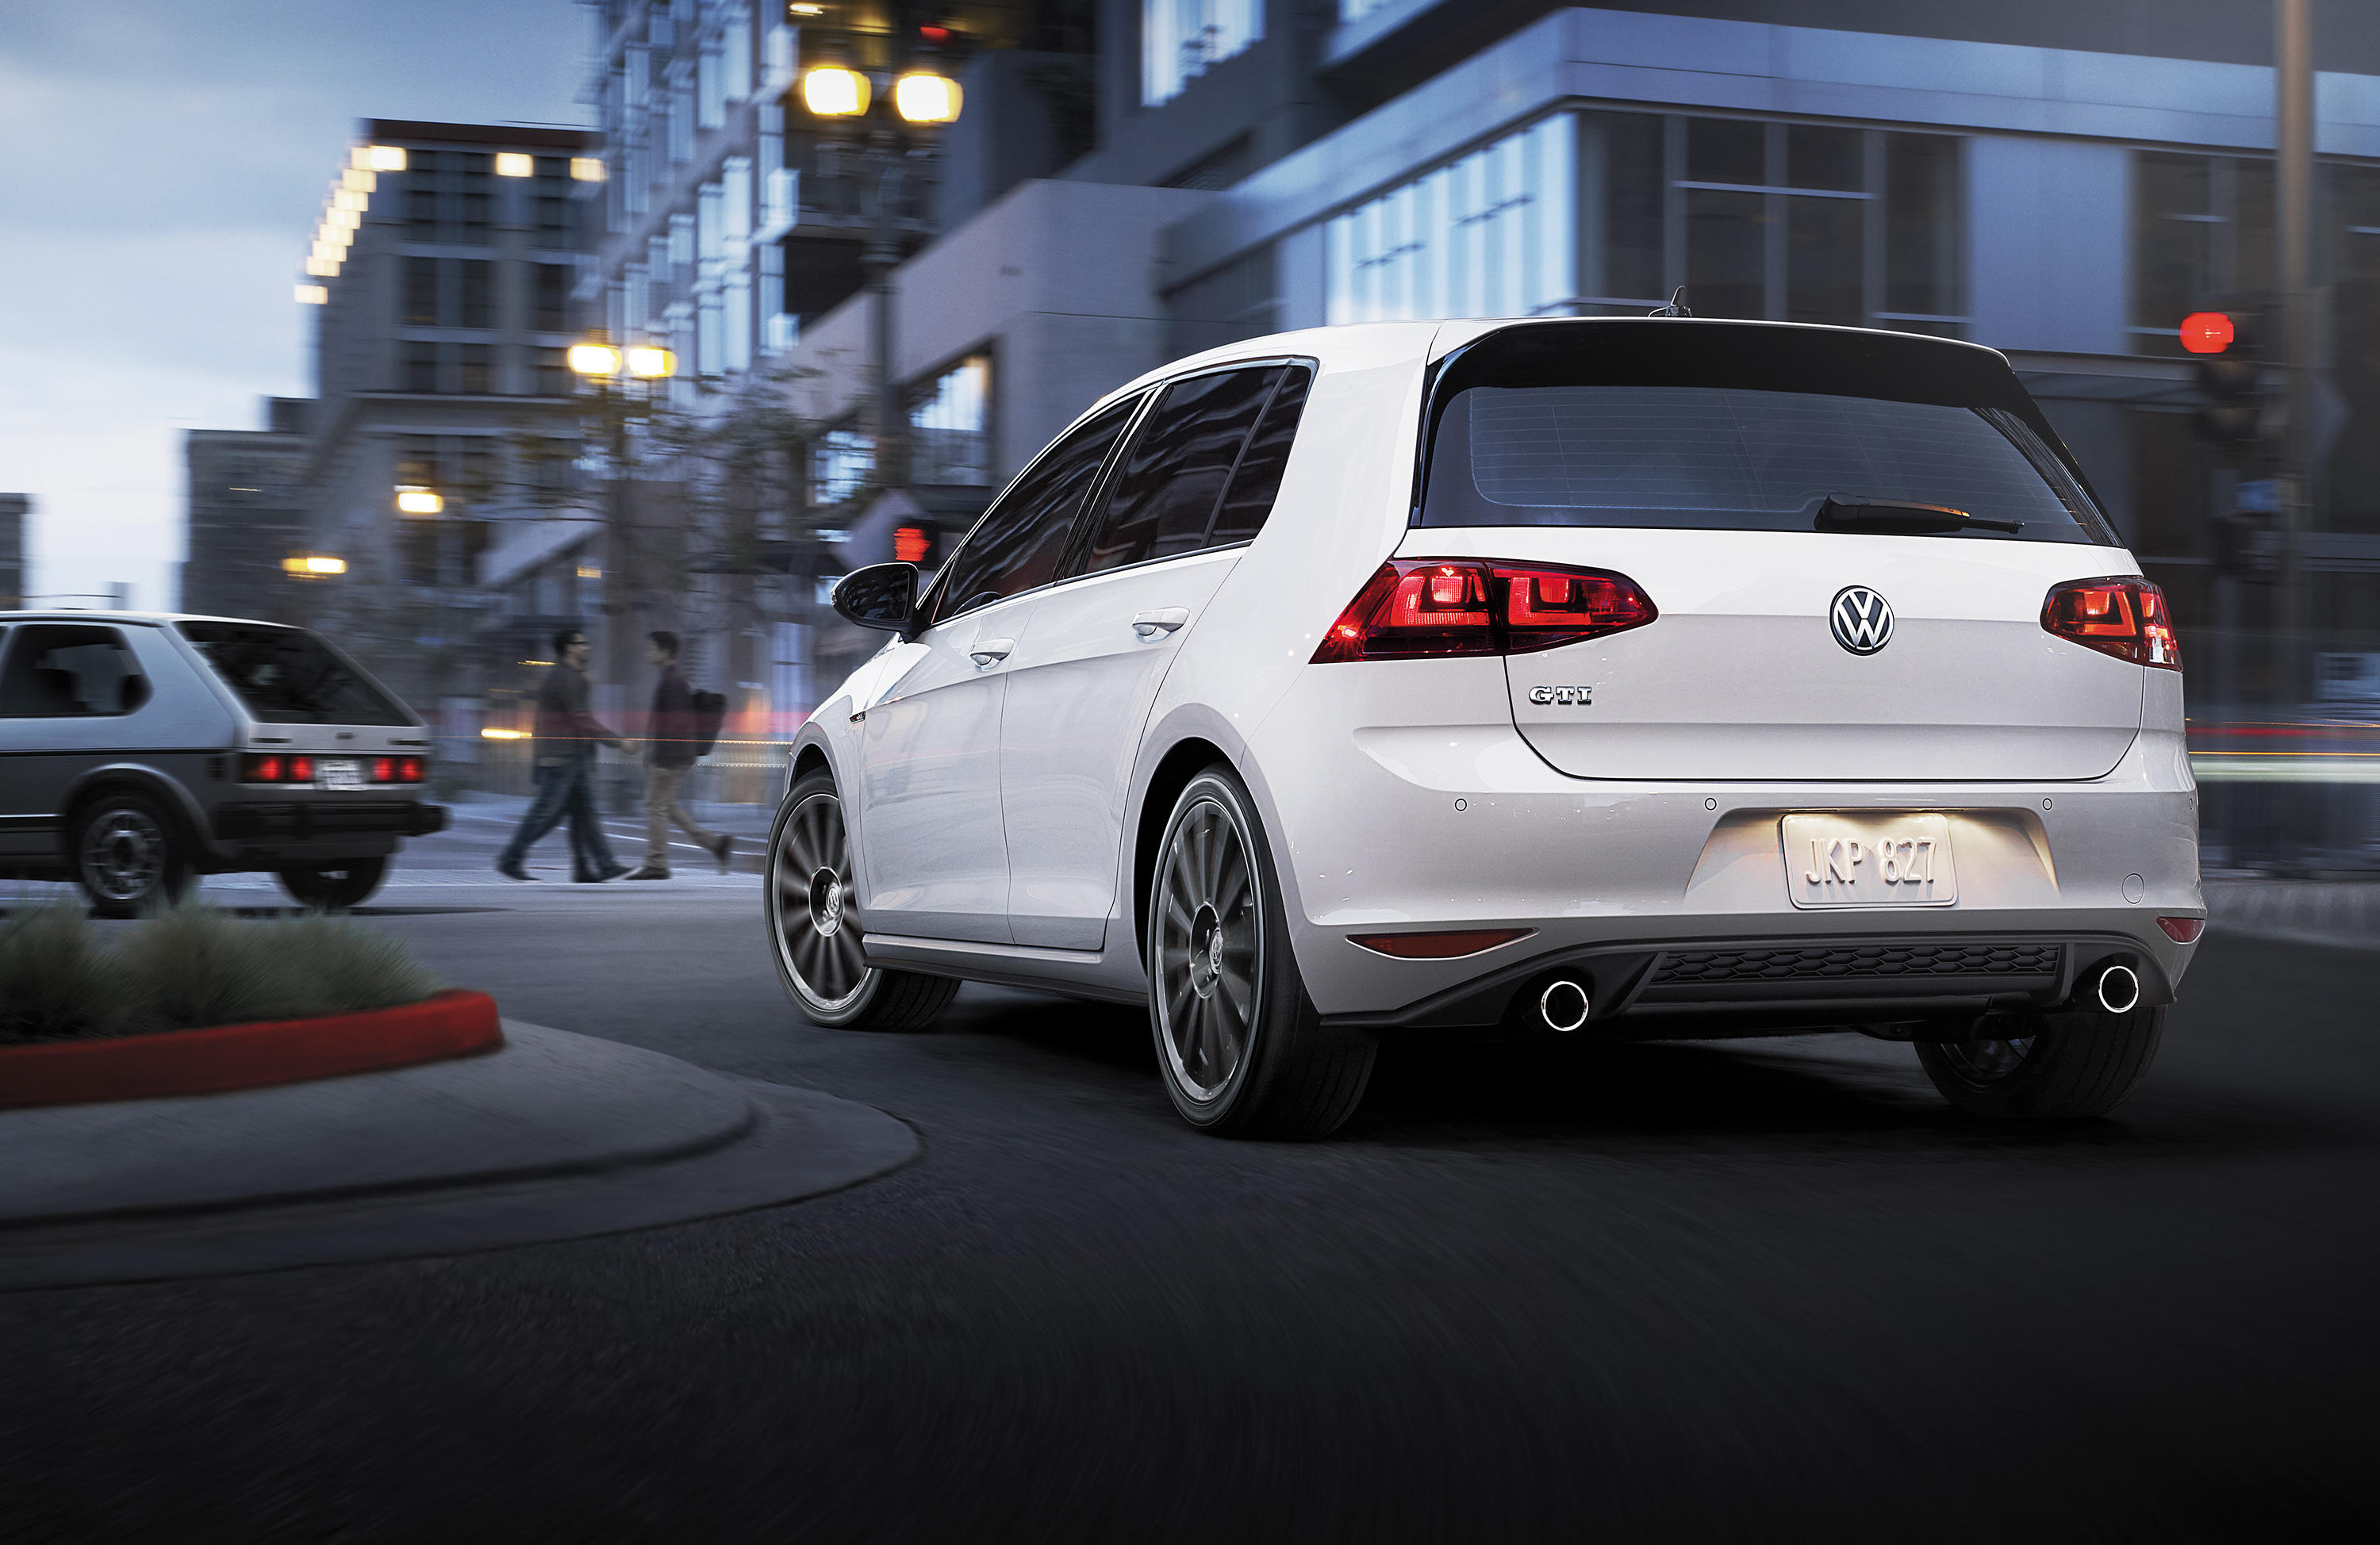 offers nuys van lease new volkswagen used deals gti special sale california original for golf vw ca finance